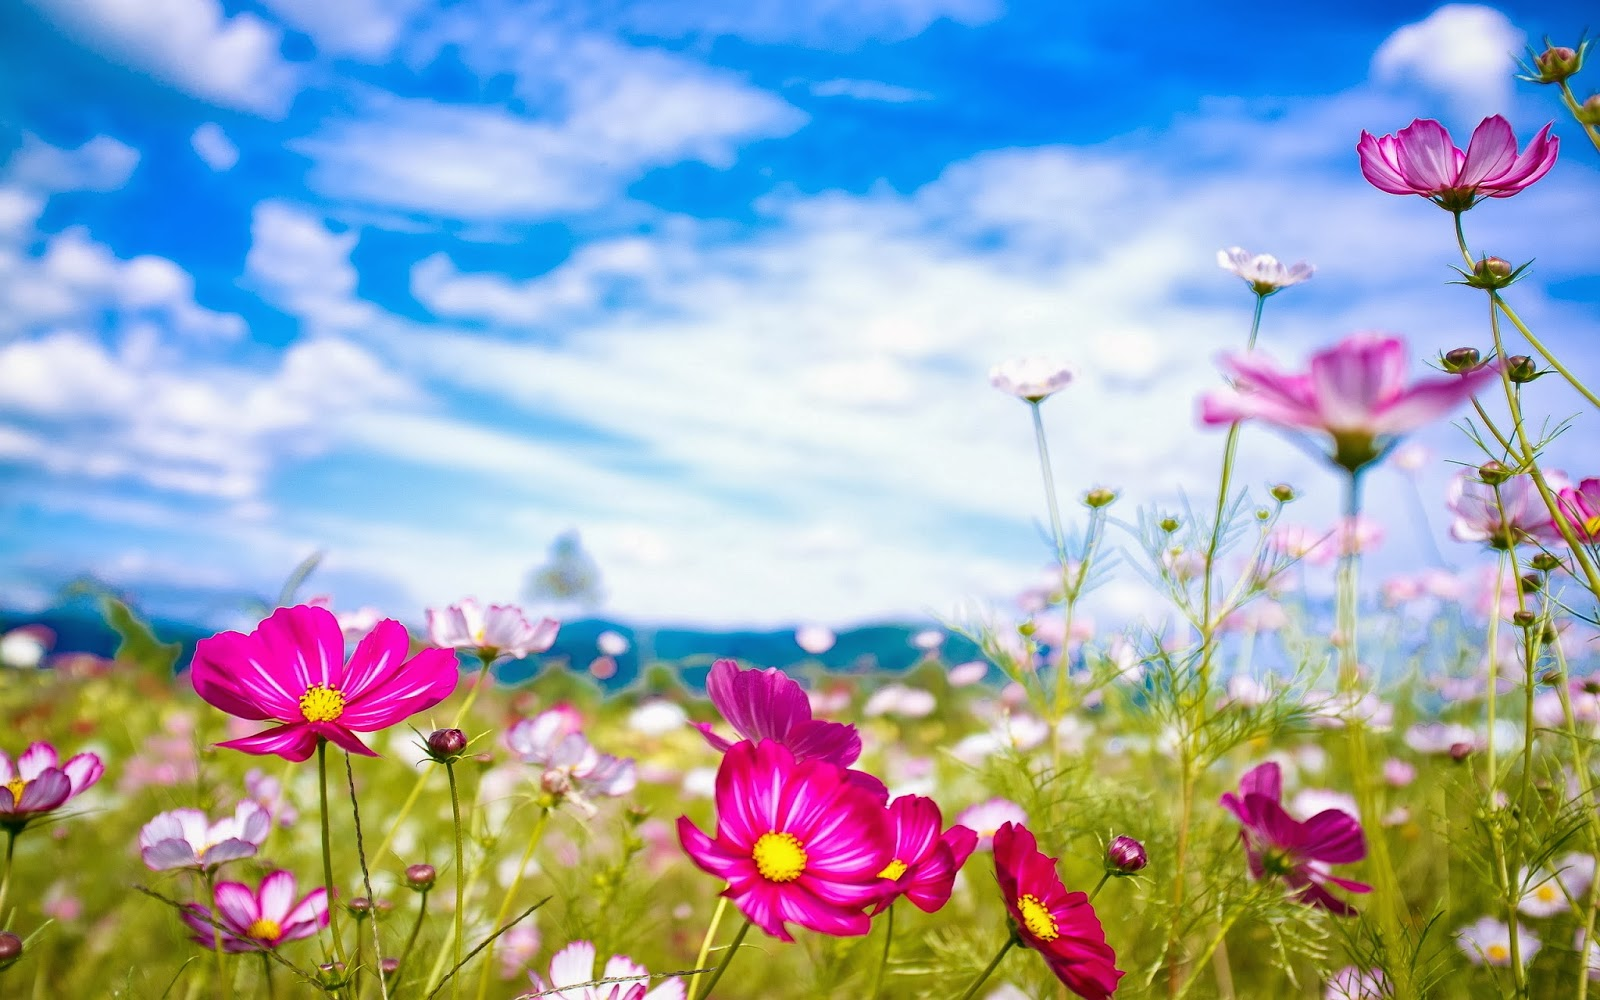 Summer flowers wallpaper   beautiful desktop wallpapers 2014 1600x1000